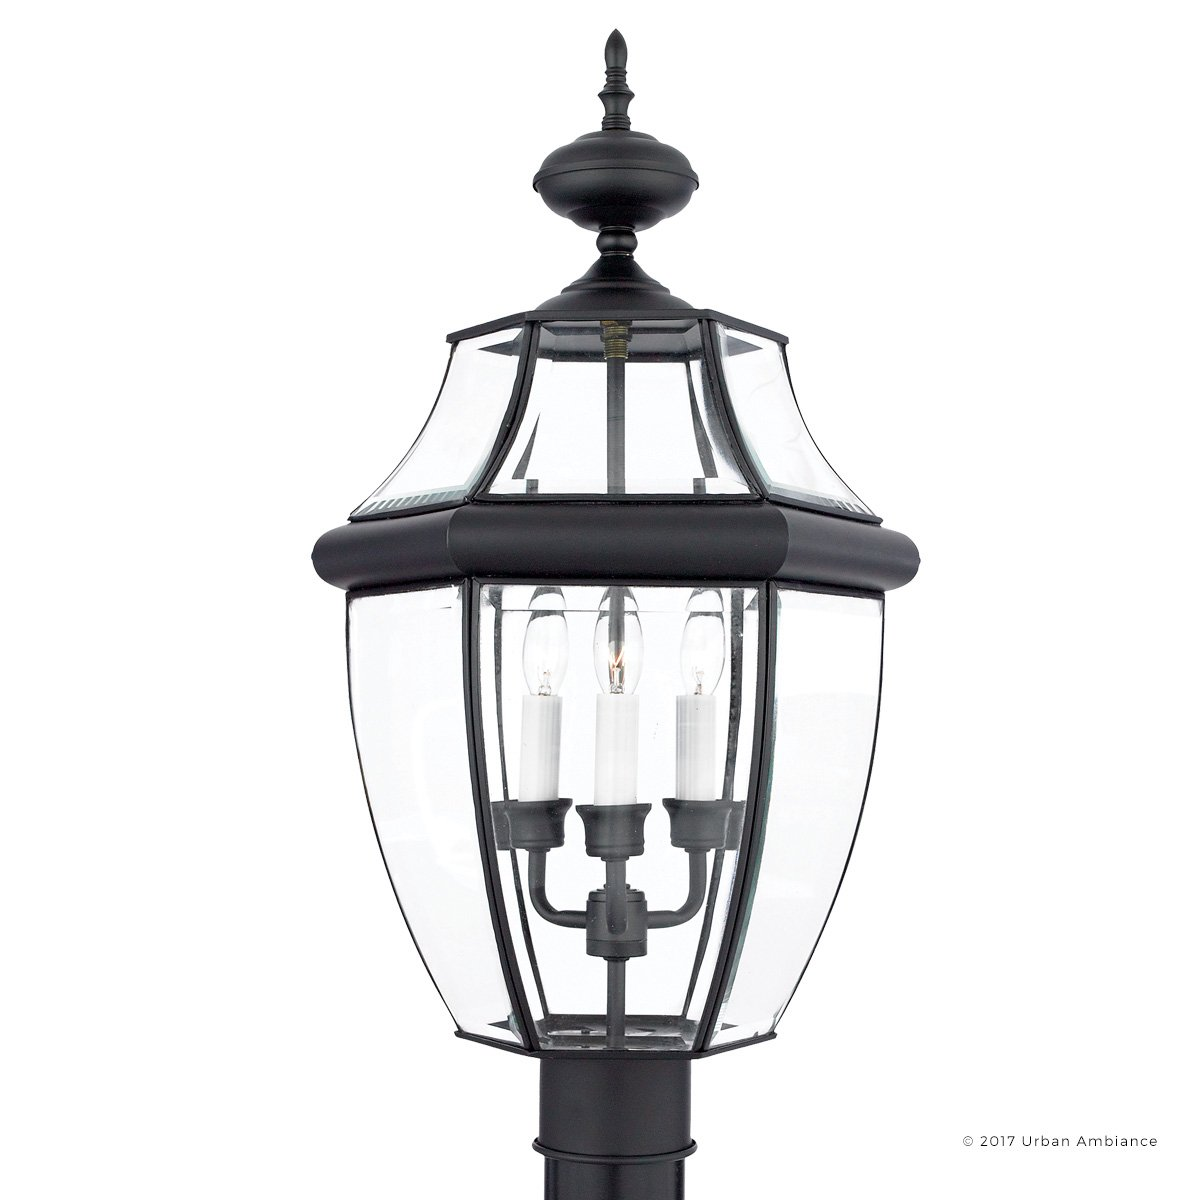 Luxury Colonial Outdoor Post Light, Large Size: 23''H x 12.5''W, with Tudor Style Elements, Versatile Design, High-End Black Silk Finish and Beveled Glass, UQL1150 by Urban Ambiance by Urban Ambiance